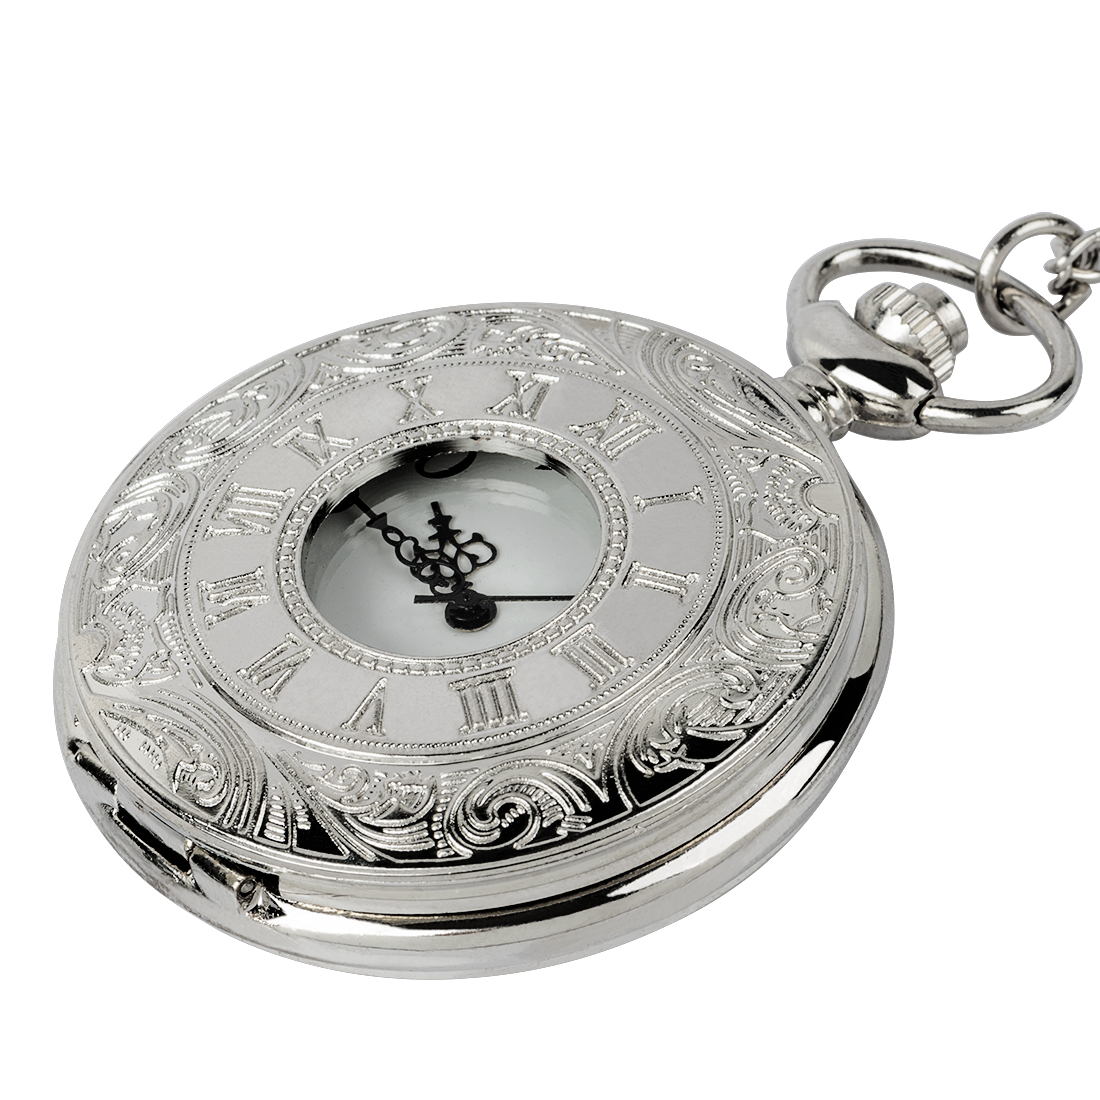 Vintage Clock Necklace Mechanical Digital Pocket Watch Vintage Simple Silver Bronze Watch Chain Watch For Men And Women